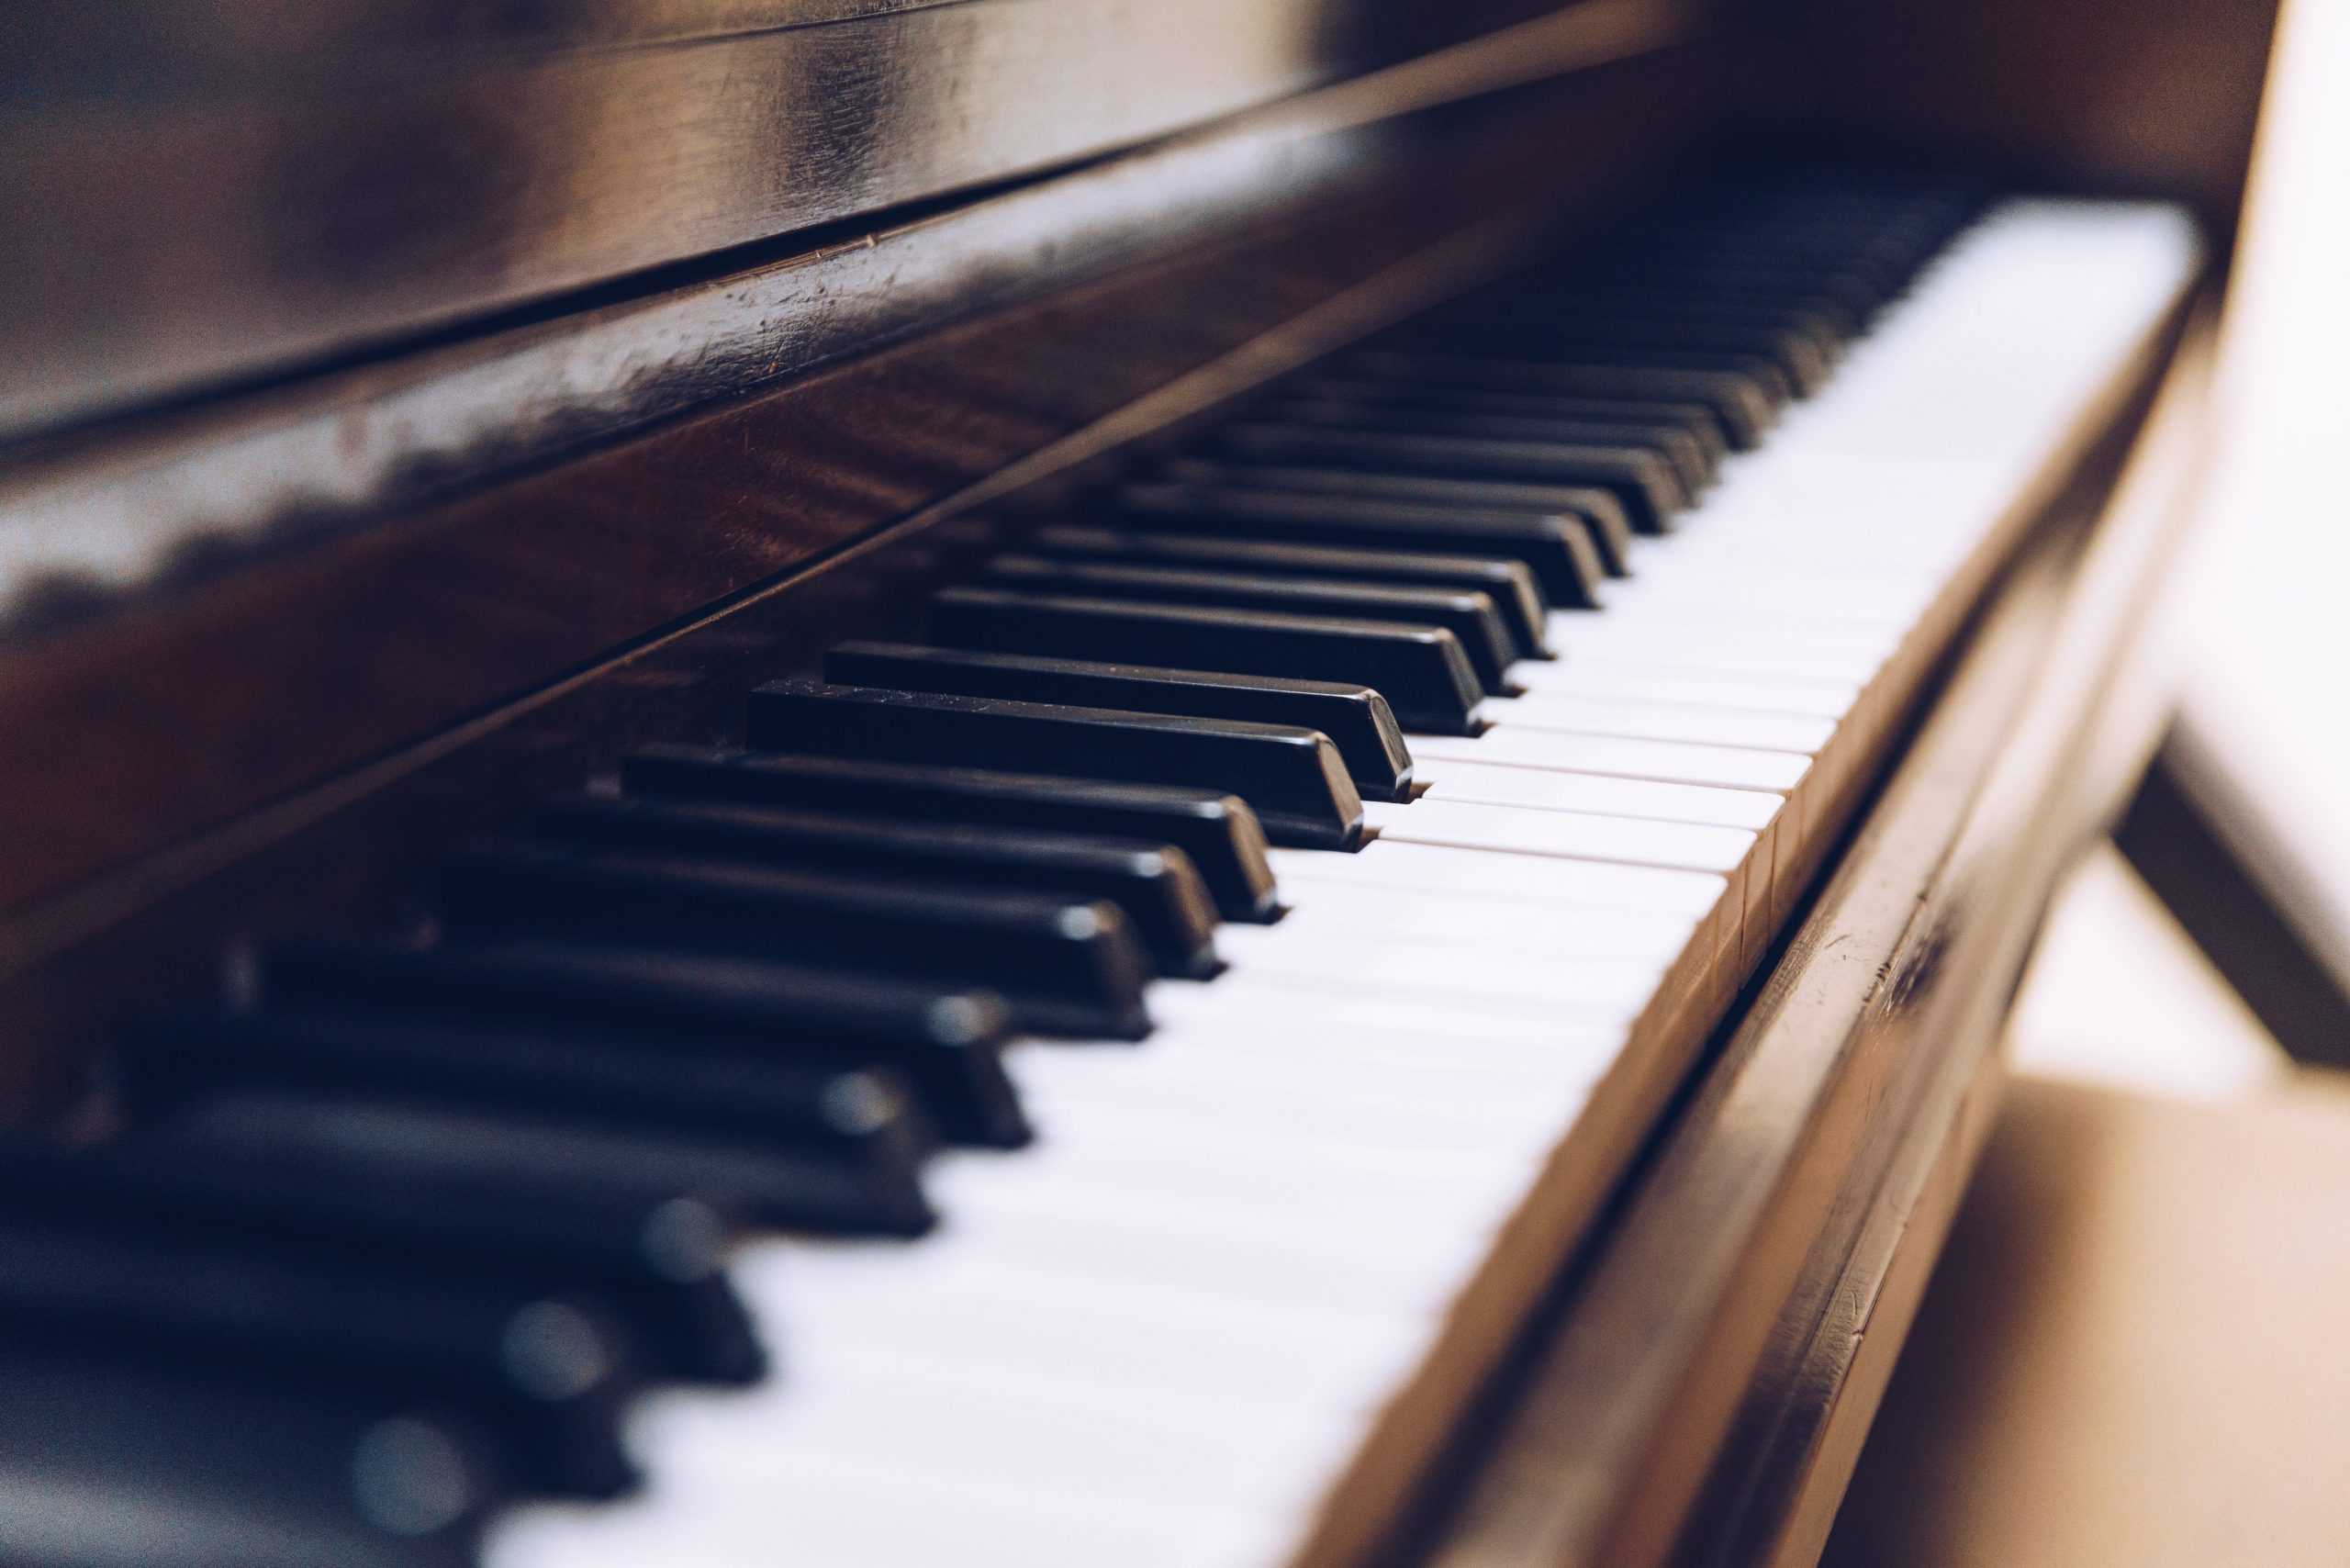 piano-keys-close-up